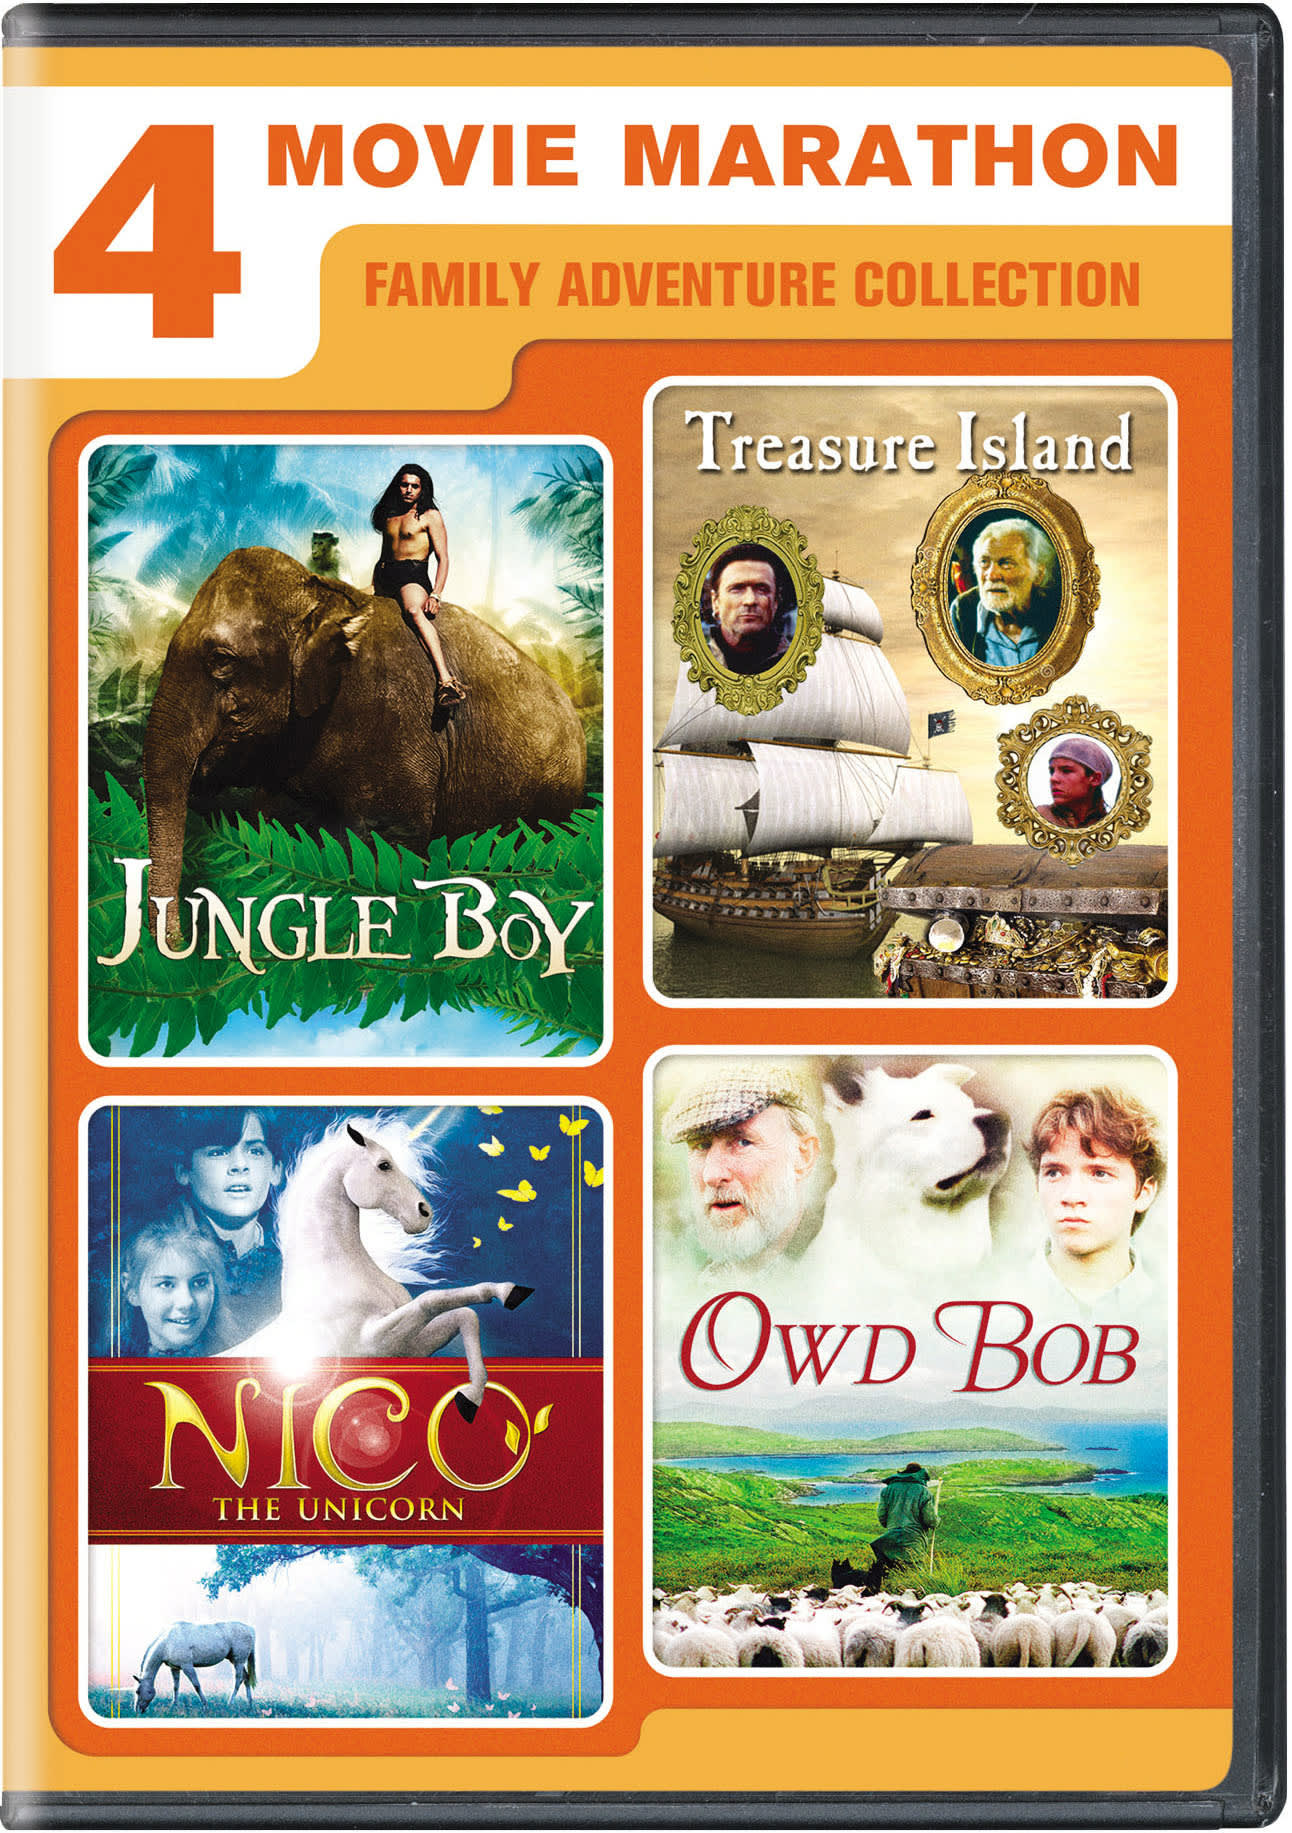 4-movie marathon: Family adventure collection [DVD]